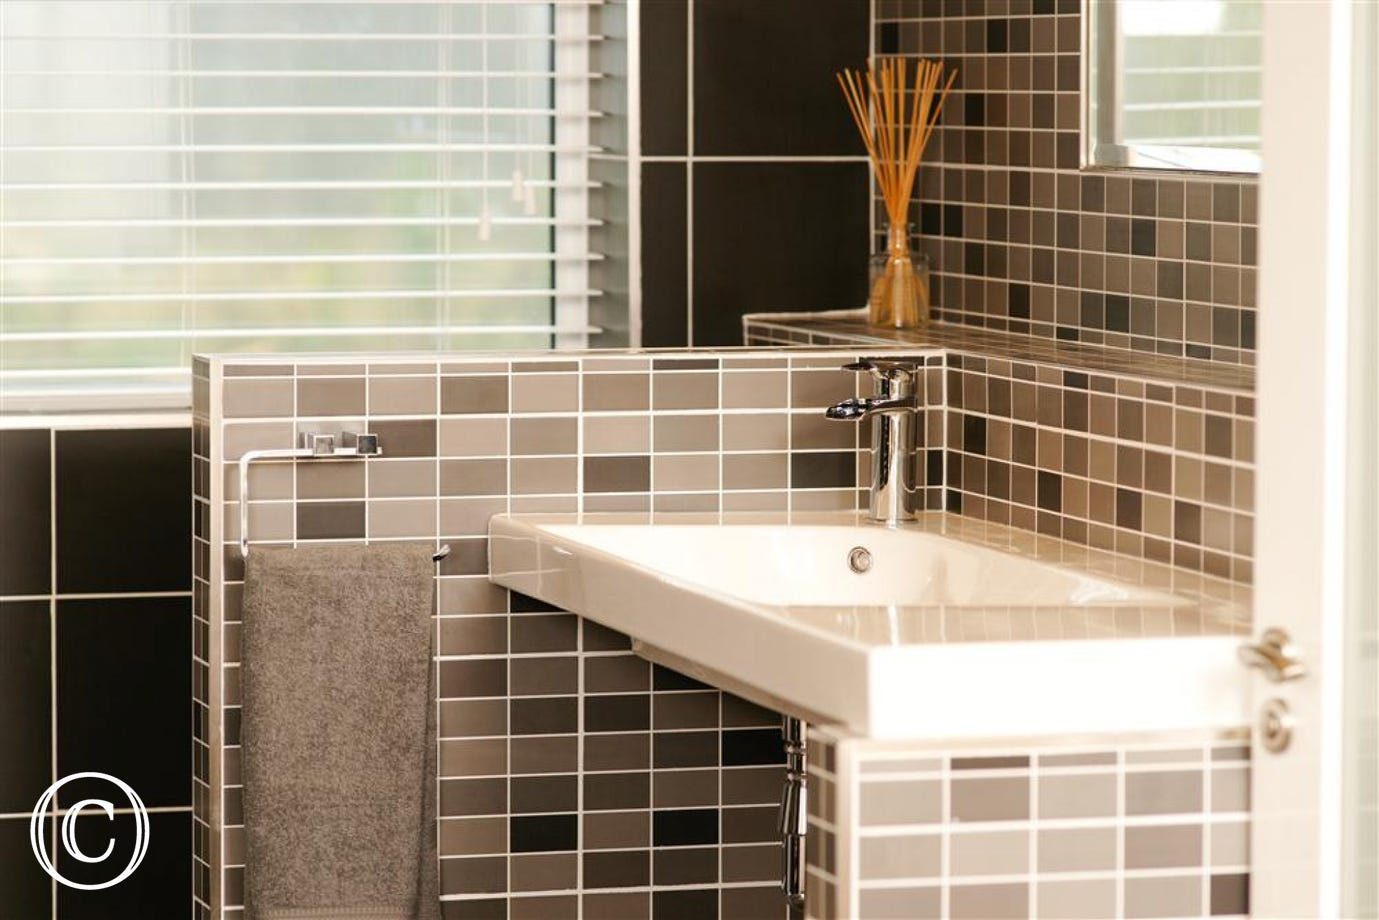 The colourful tiles and chrome fittings add a touch of class.